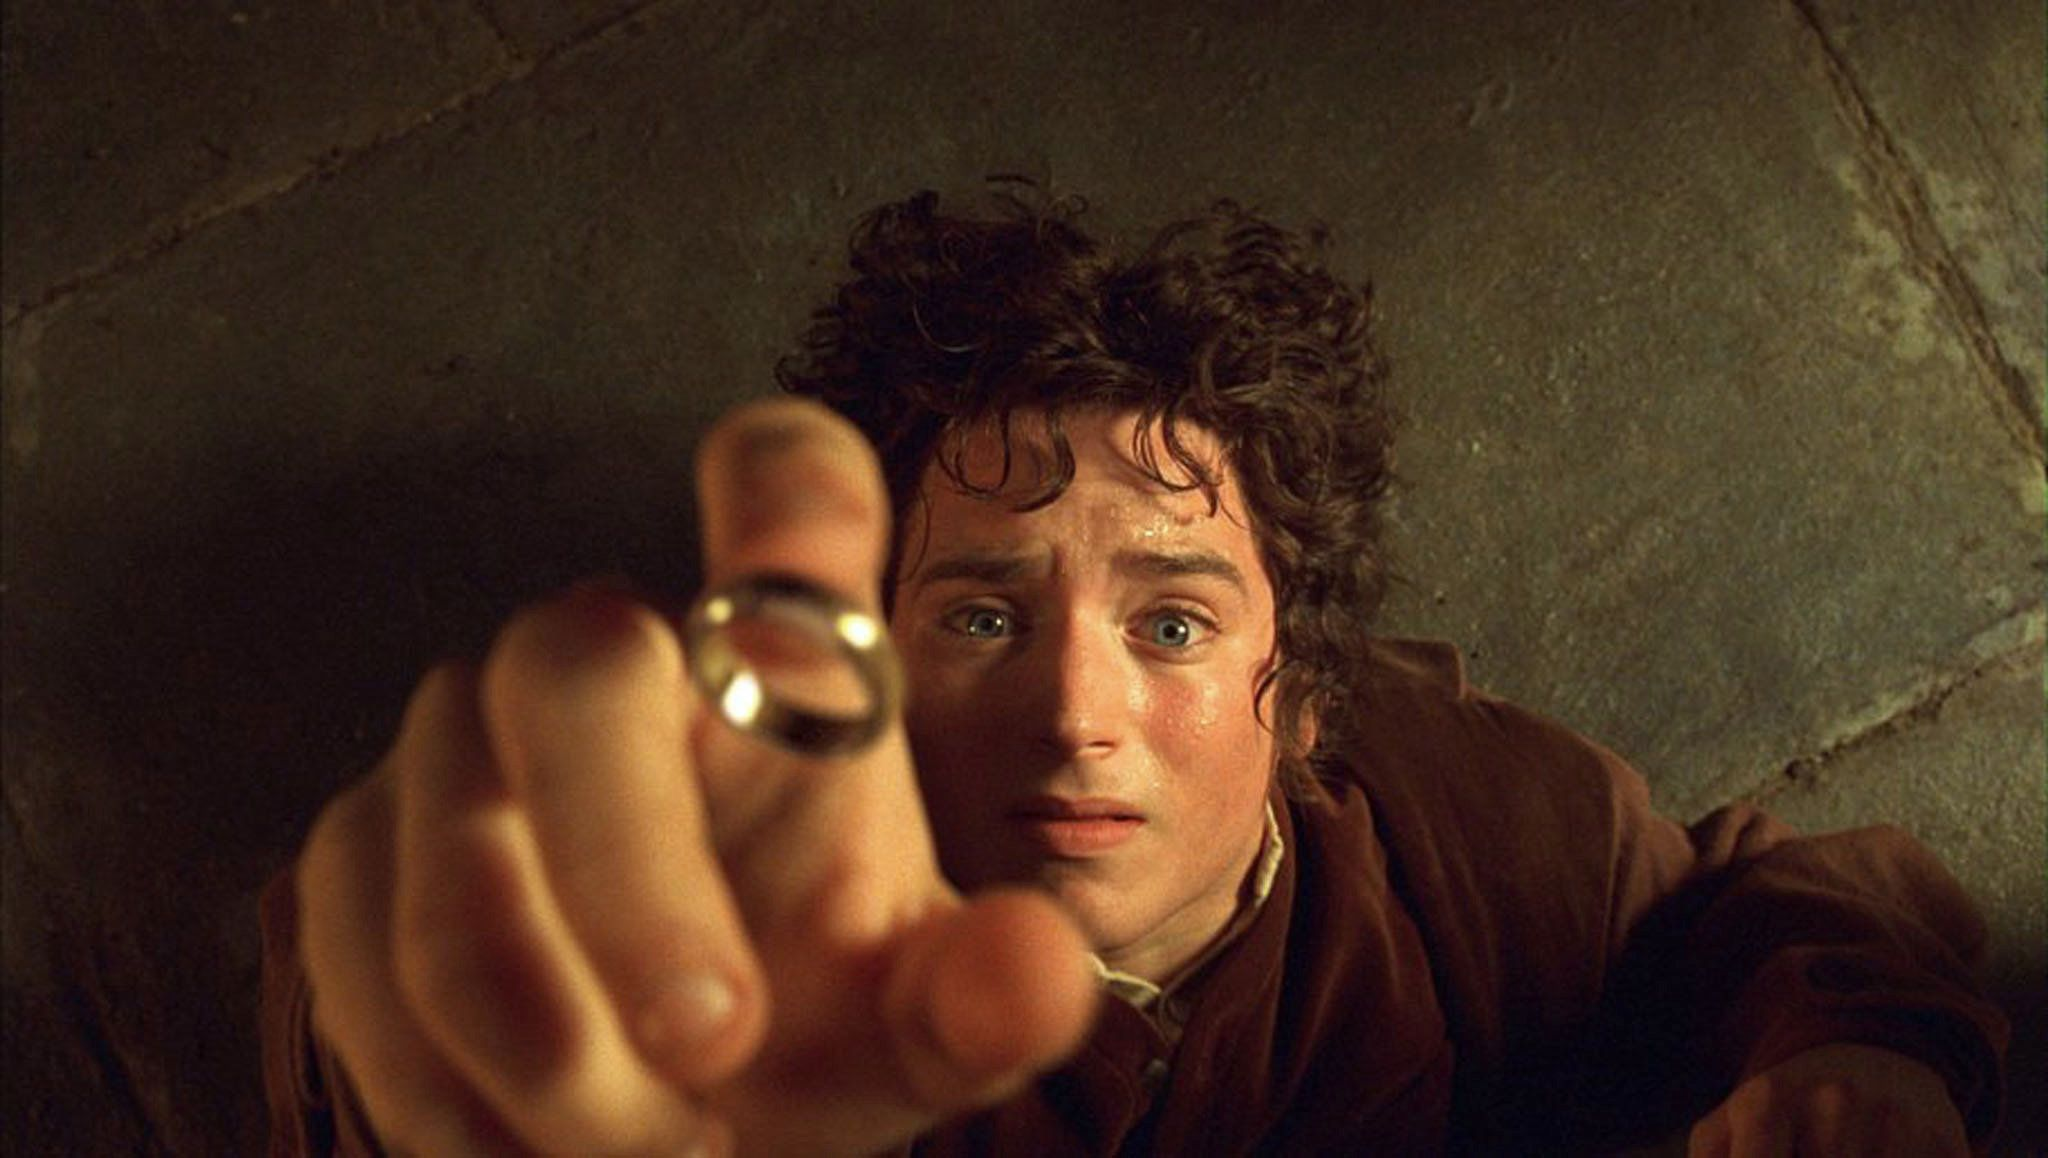 "ATTENTION: THIS PICTURE HAS BEEN BINNED, DO NOT USE. -UNDATED PUBLICITY PHOTO- Actor Elijah Wood portrays Hobbit Frodo in a scene from the film ""The Lord of The Rings The Fellowship of The Ring"" in this undated publicity photograph. [The film received four Golden Globe nominations, including Best Drama Motion Picture, in Beverly Hills, California December 20, 2001. The Golden Globe Awards will be presented in Beverly Hills January 20, 2002.]  REUTERS/Handout"